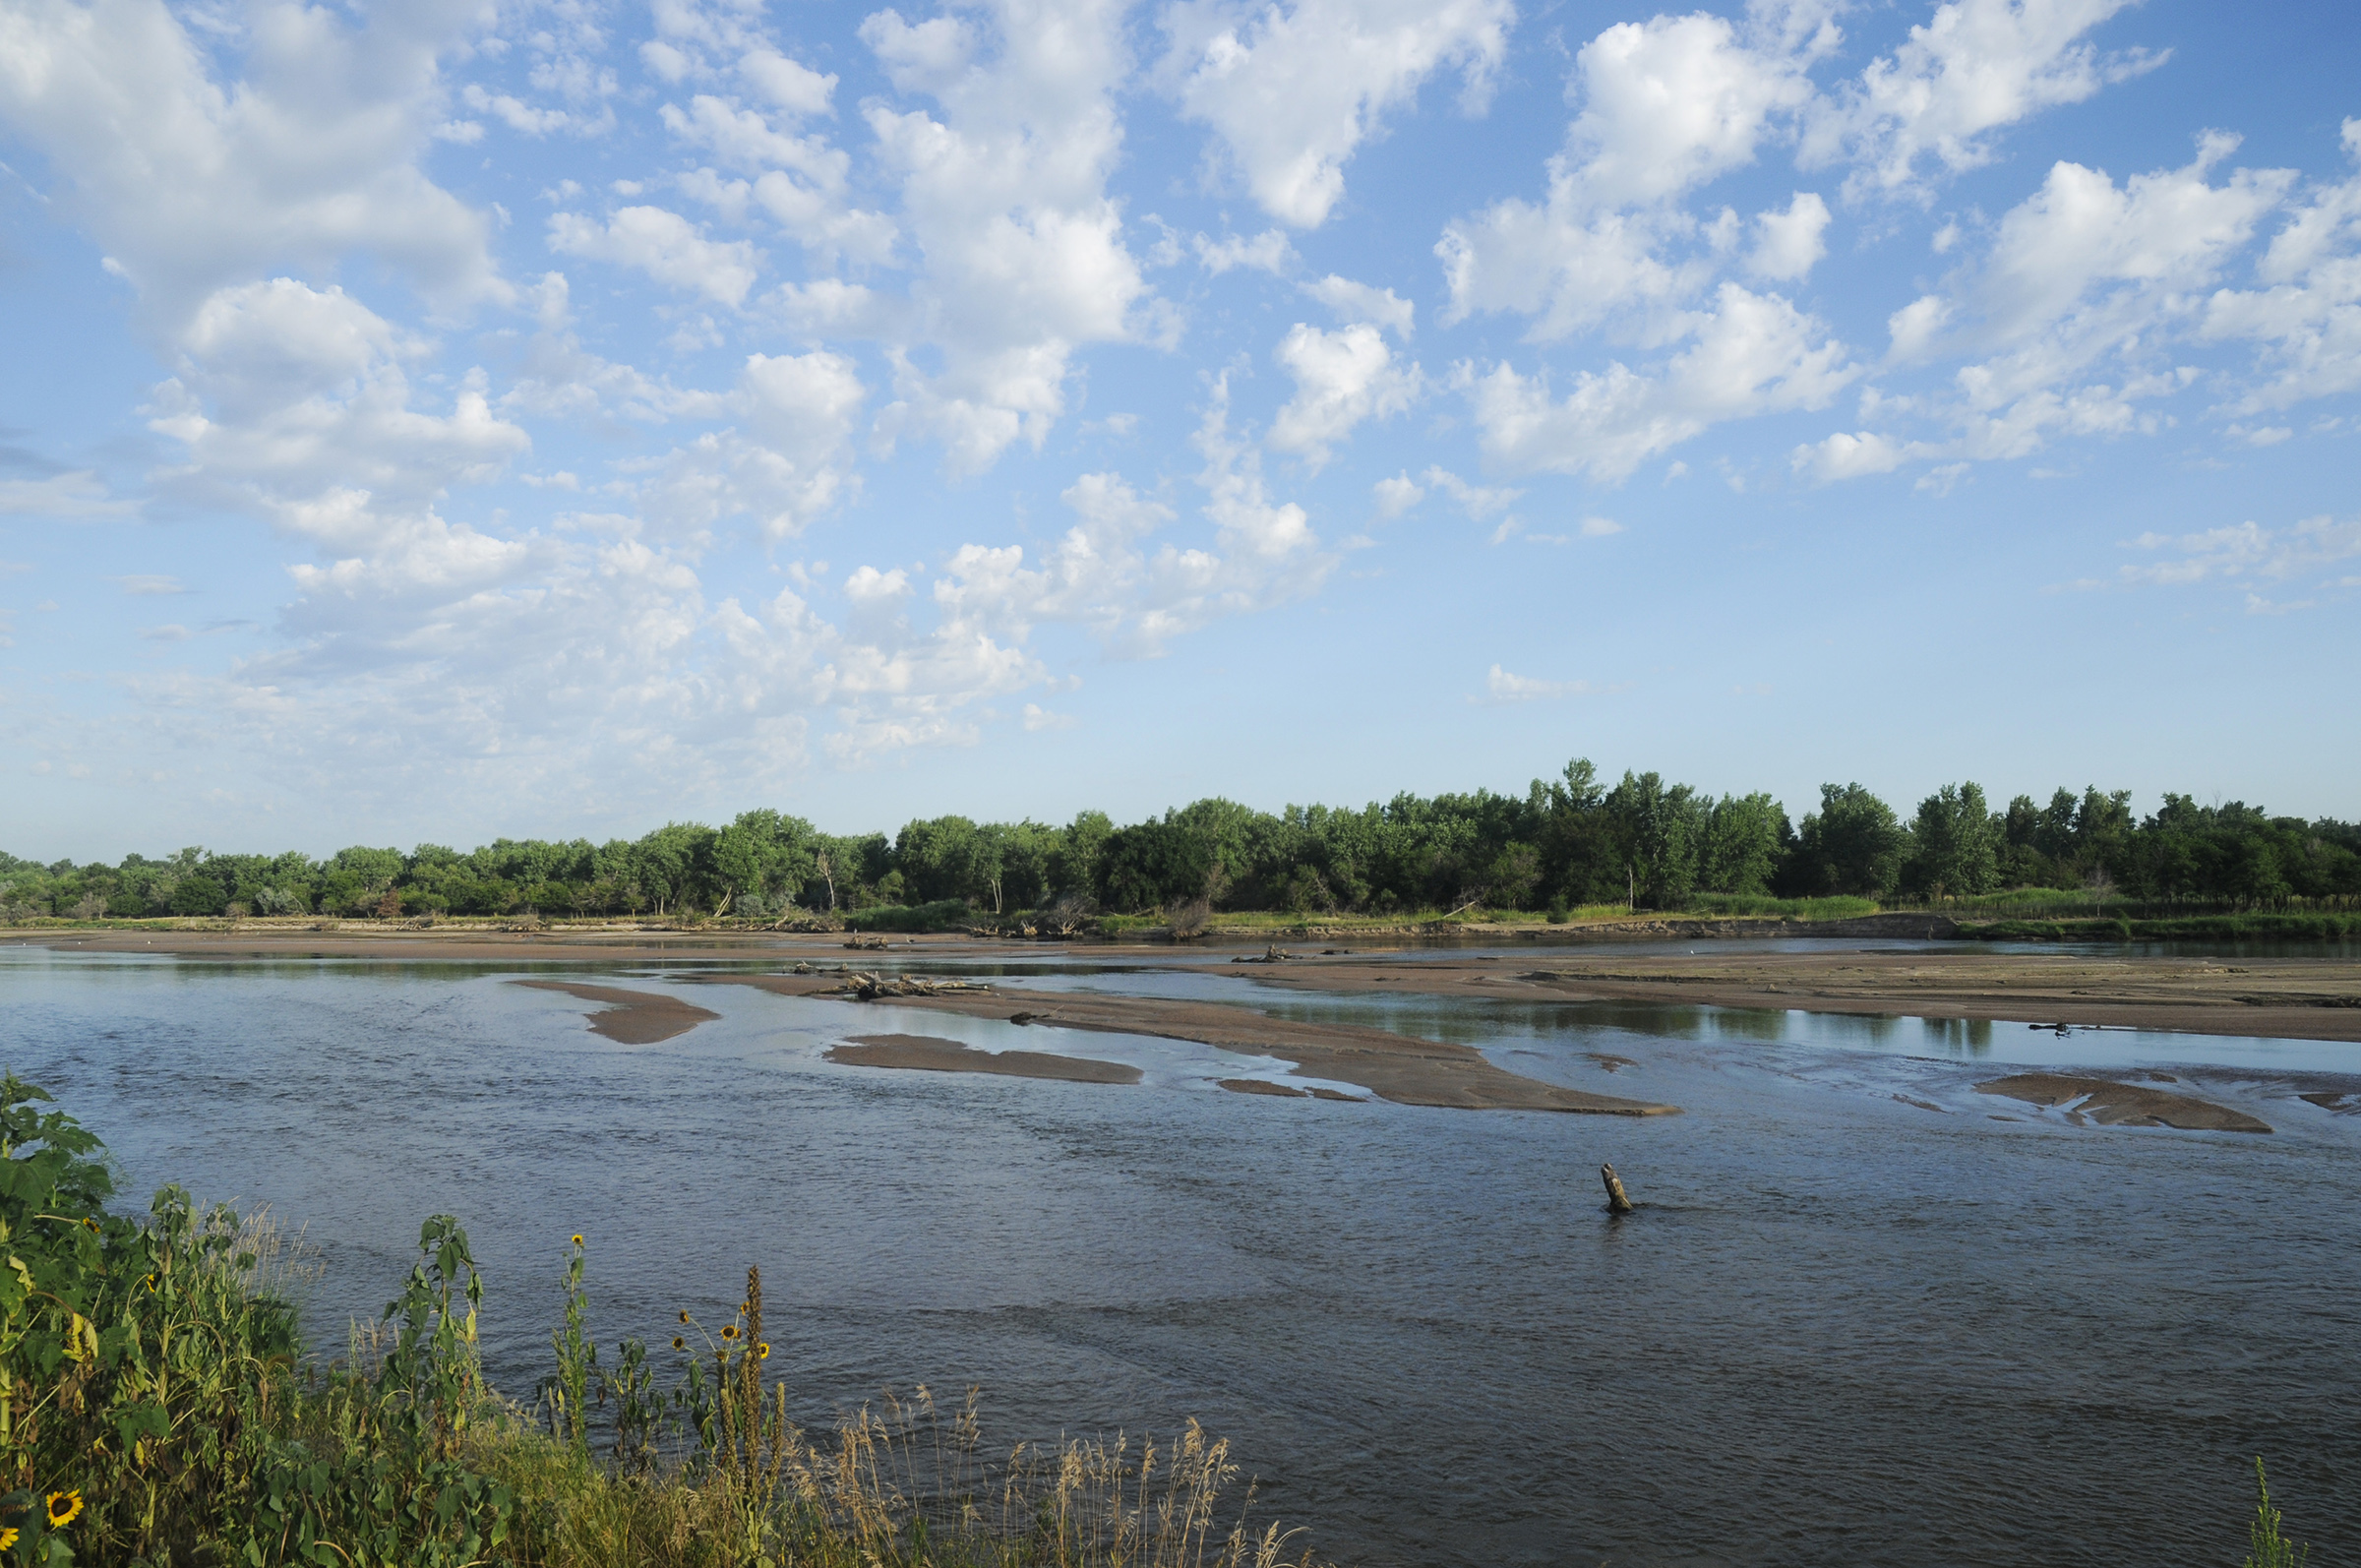 High water scoured sandbars on the Platte River near Plum Creek. (Michael Forsberg)